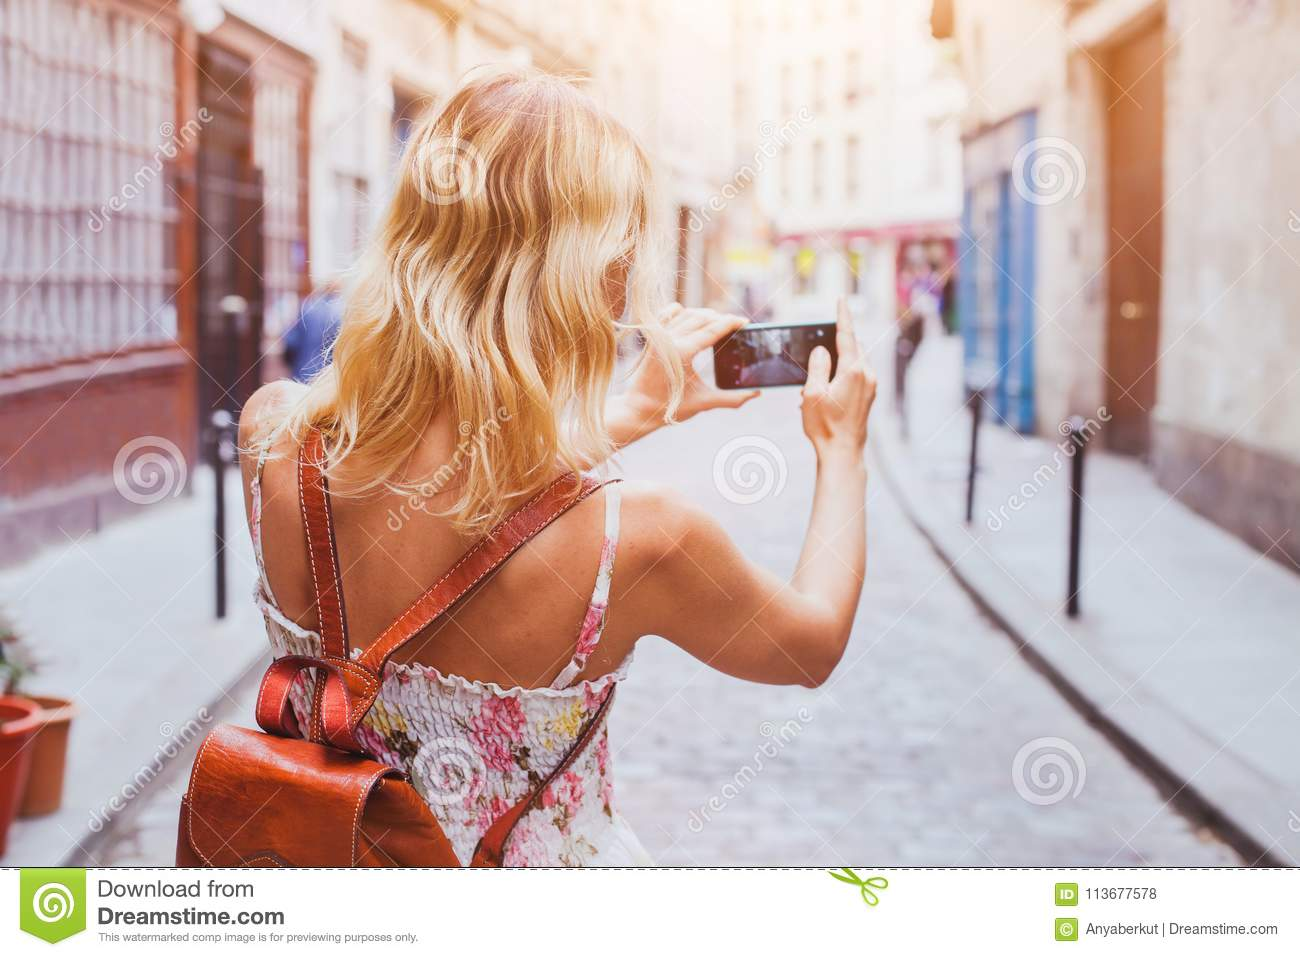 Tourist taking photo on the street, tourism and travel